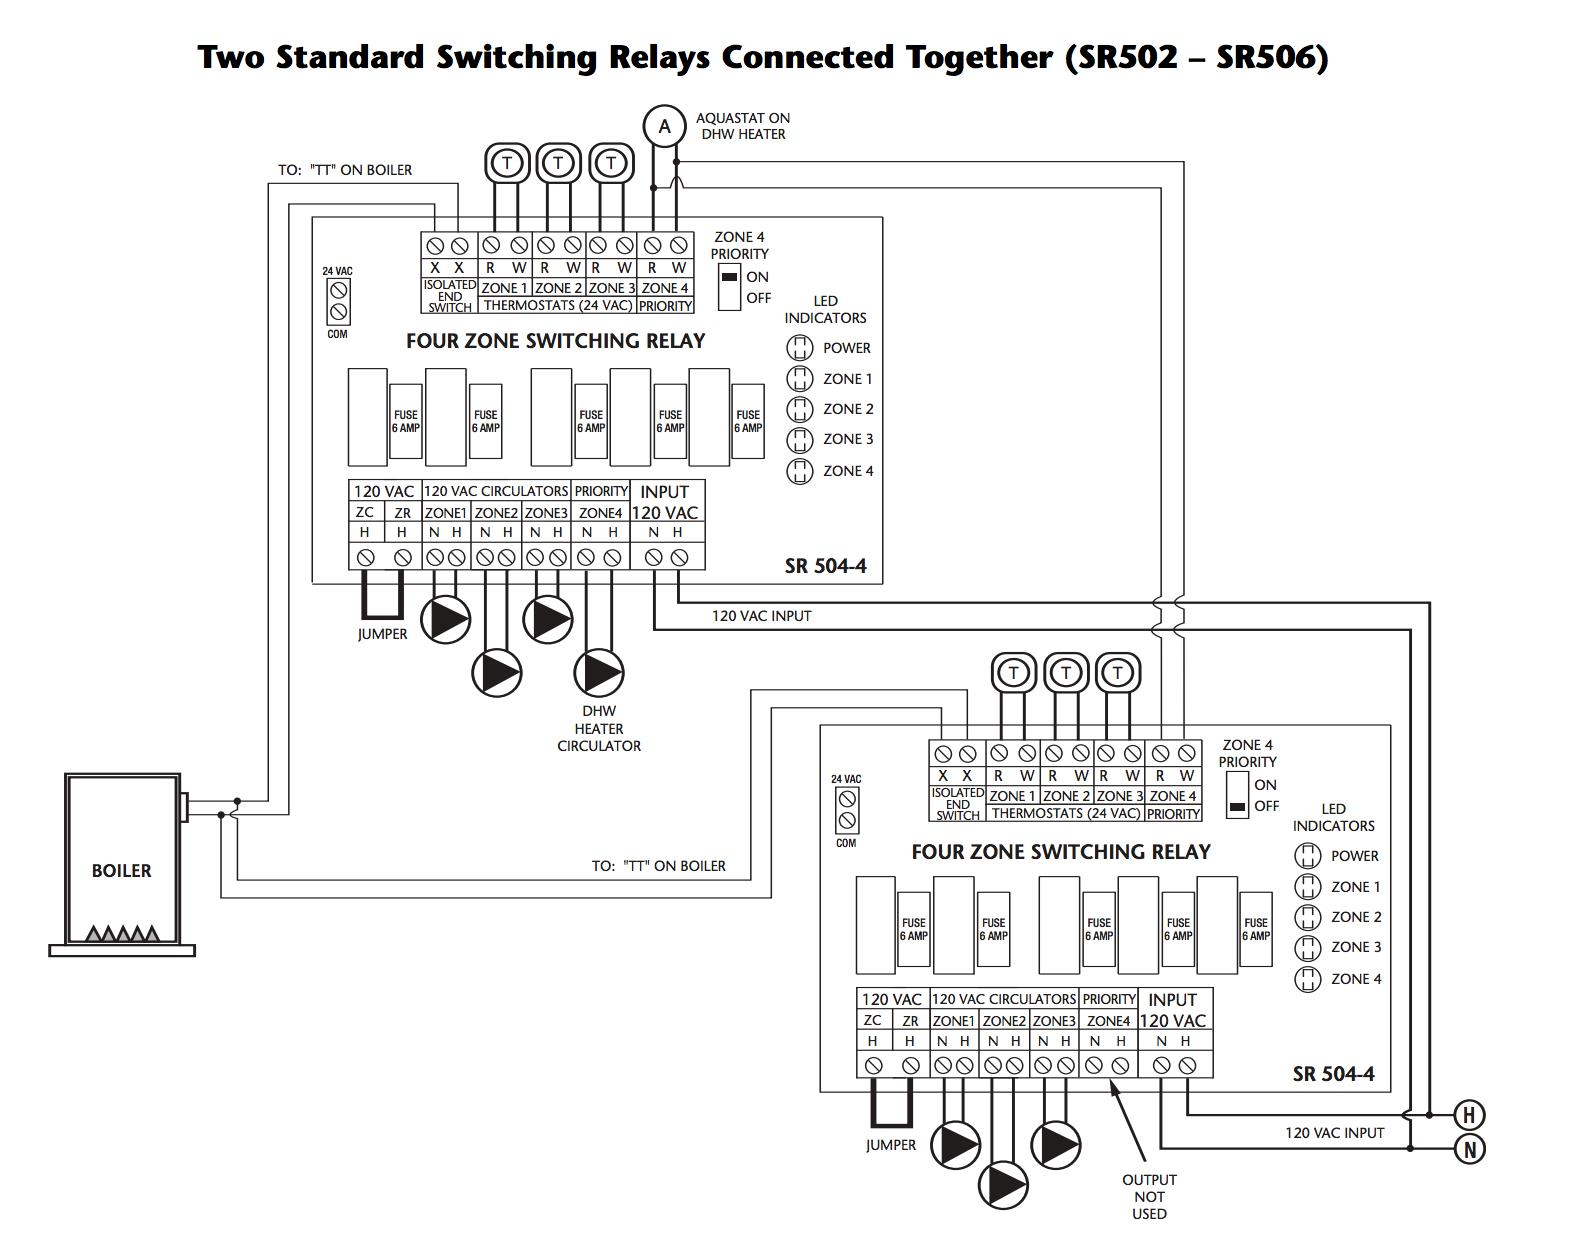 How to Wire Multiple Taco SR502-SR506 Switching Relays